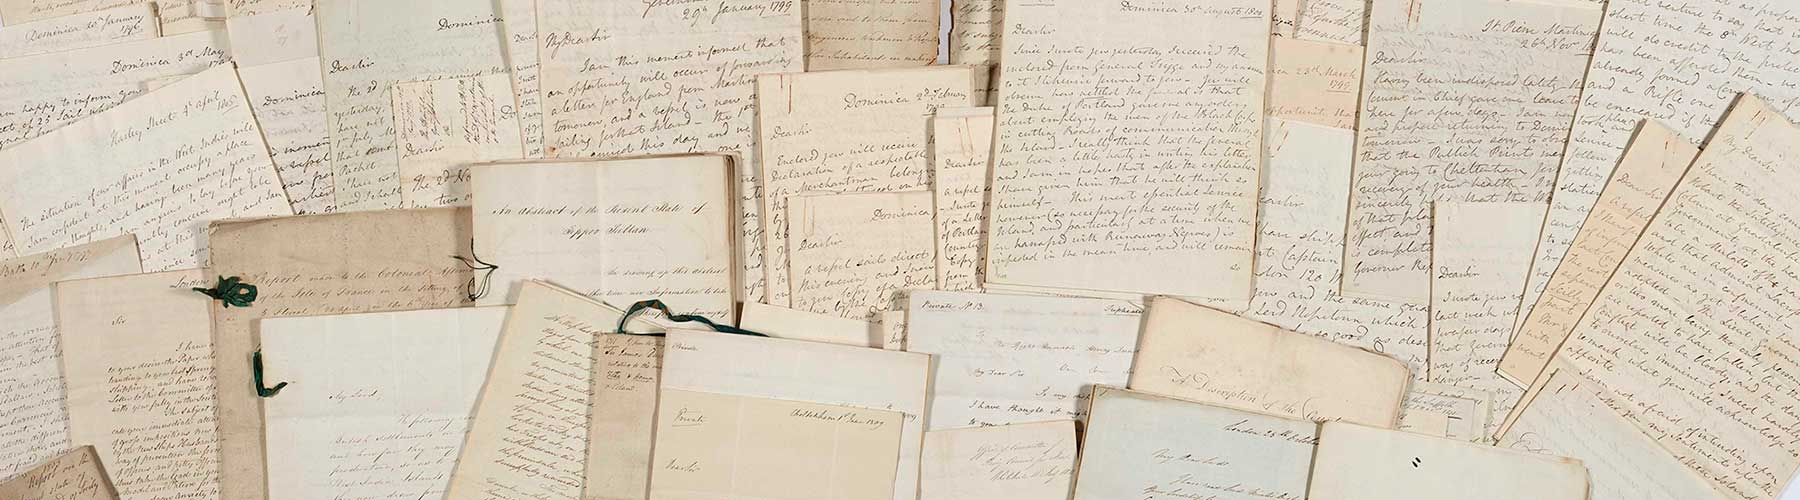 collectors council acquisition group of letters